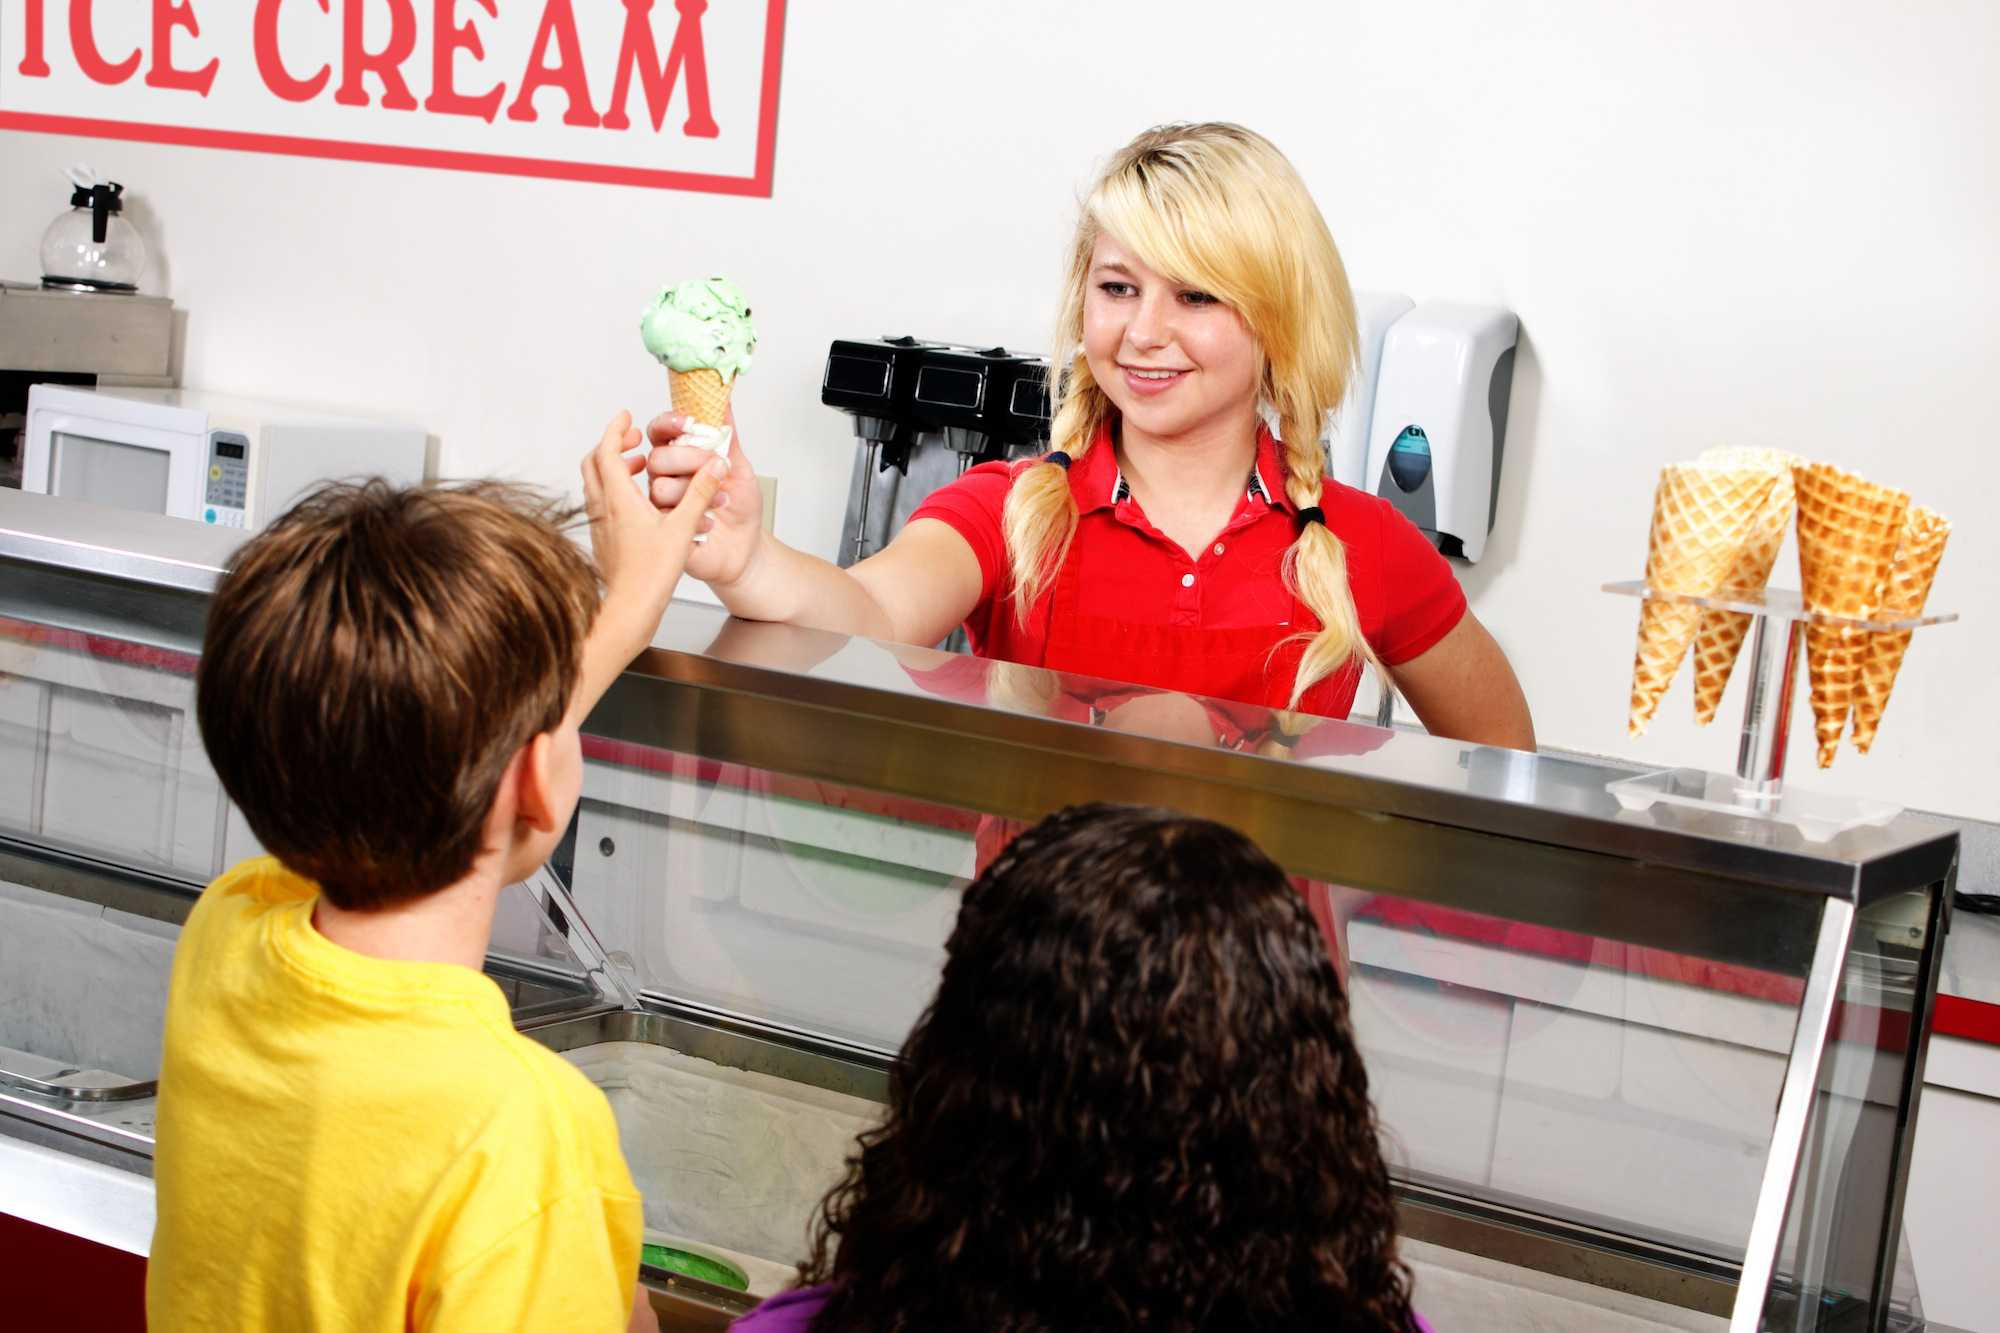 Young girl working in an ice cream shop